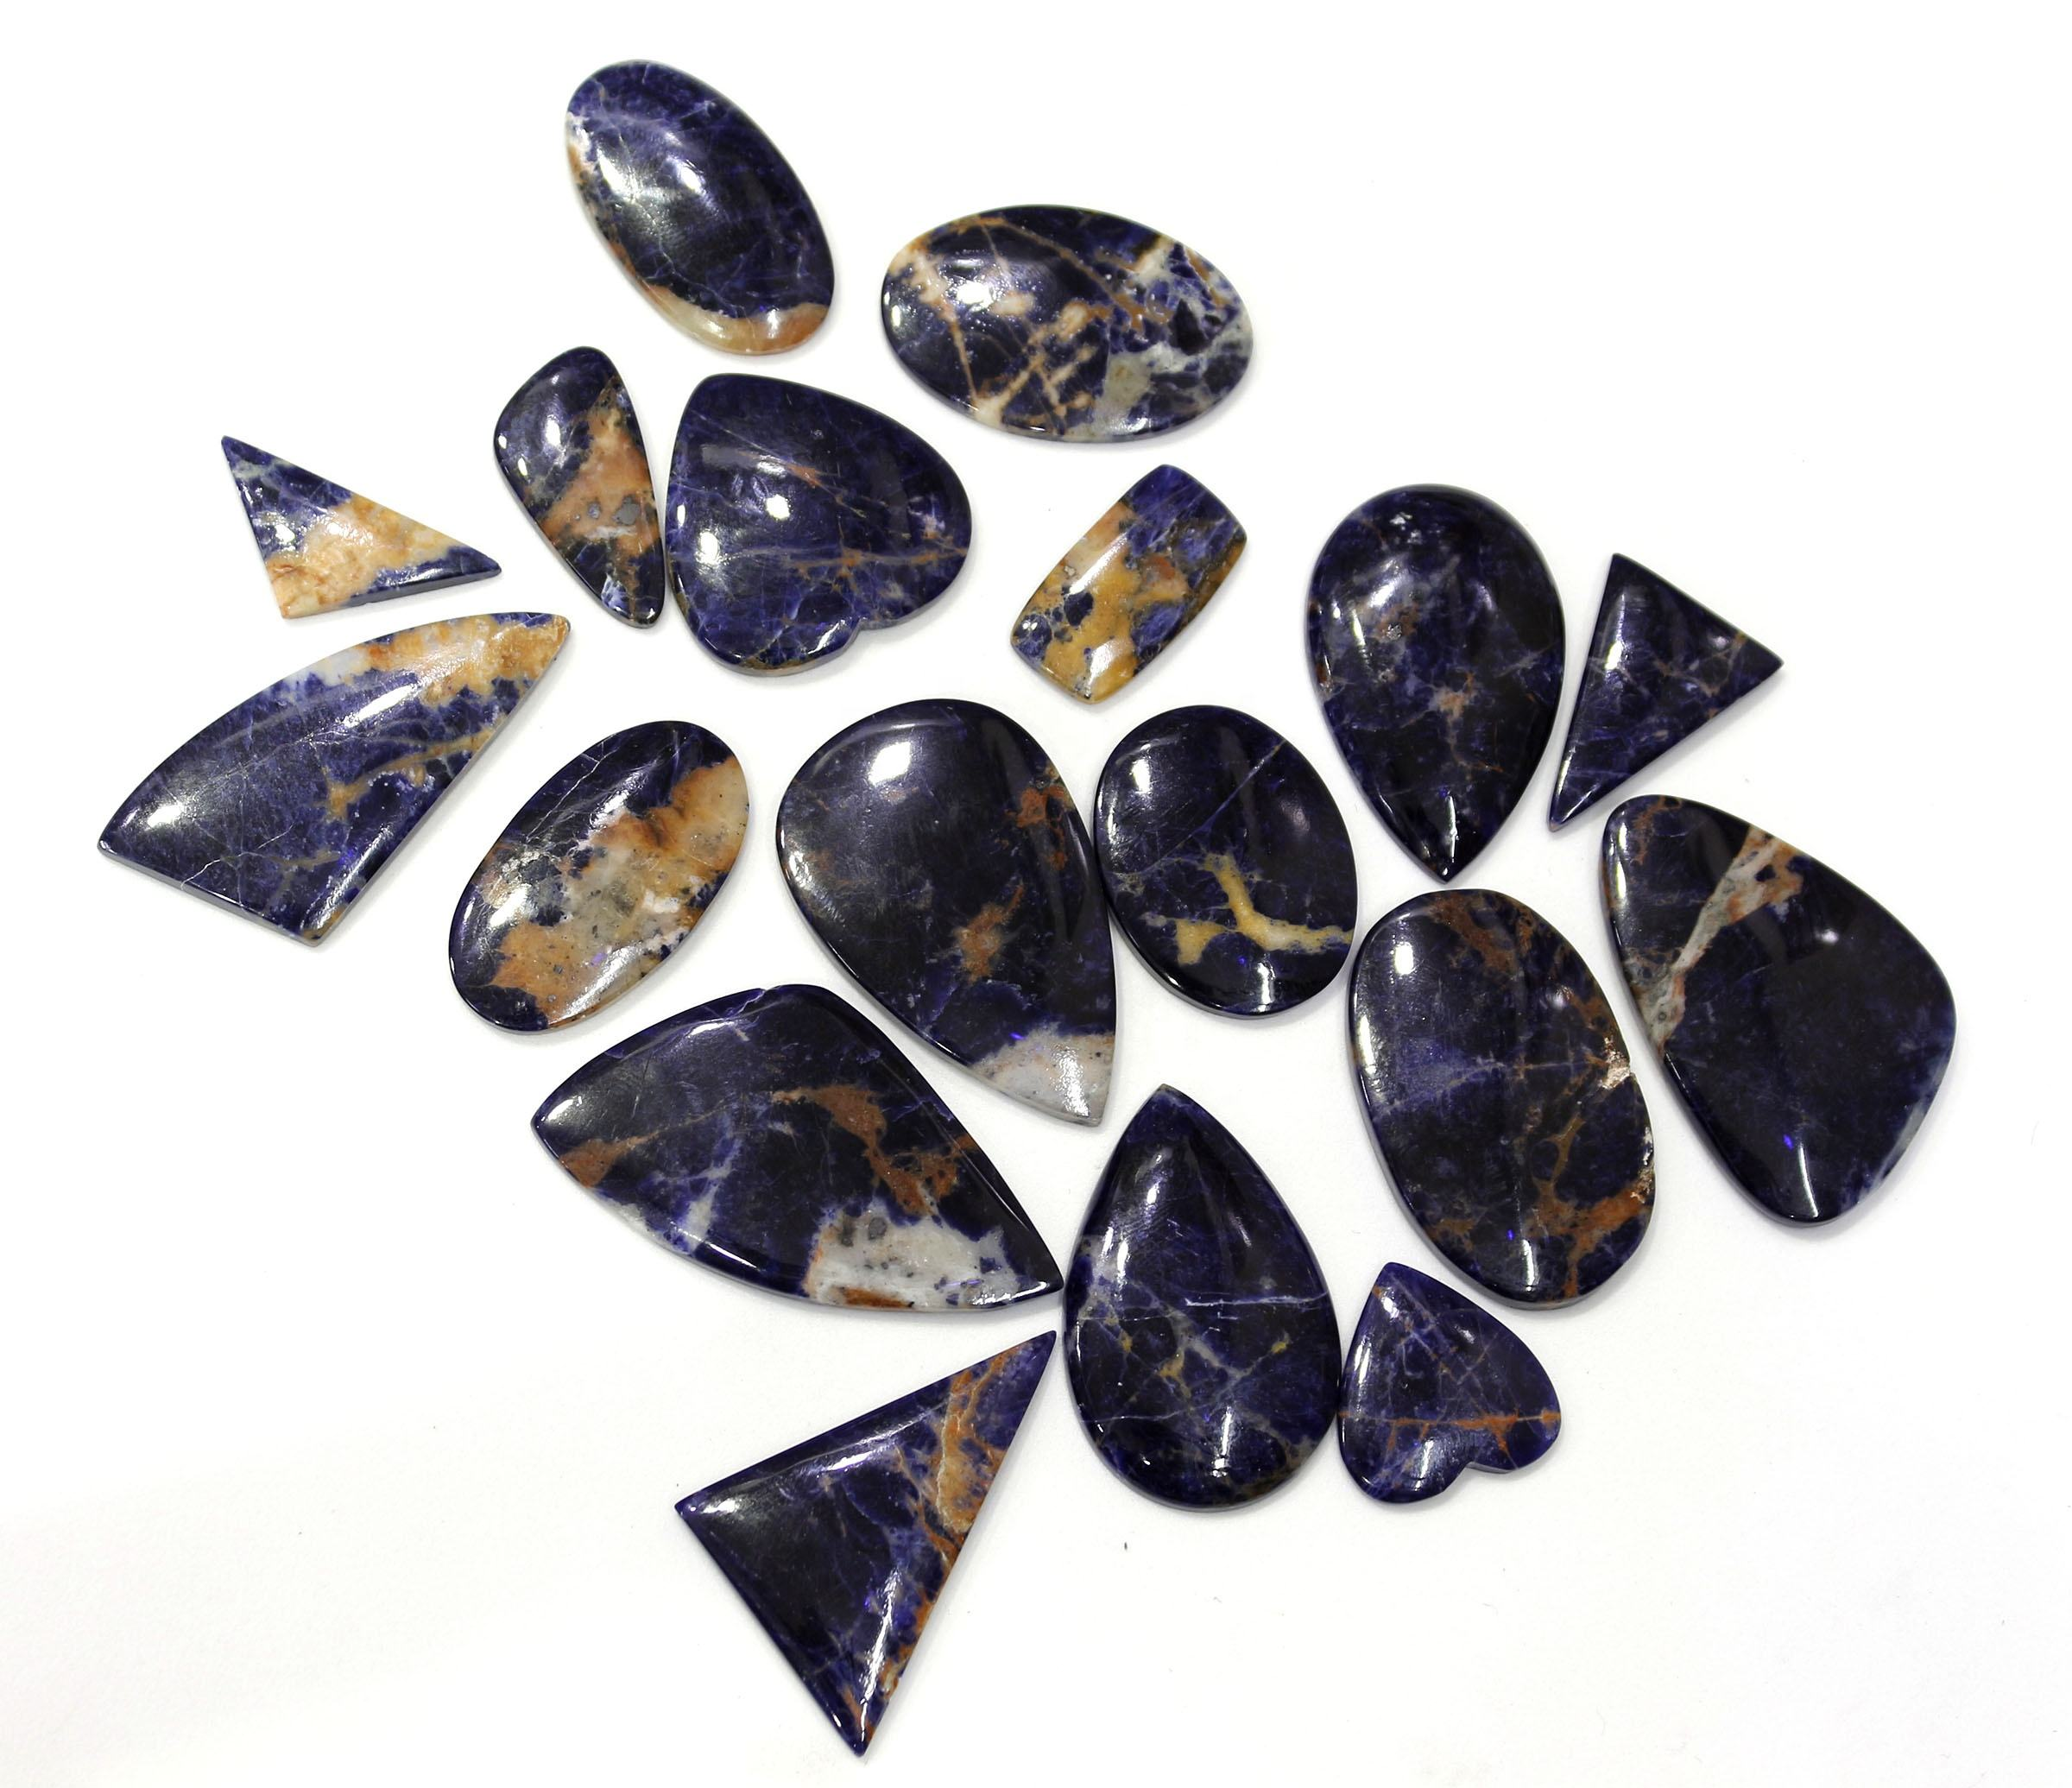 Mix Shape Free Size Sodalite Loose Gemstone Flat back Cabochon Blue Color Sodalite Wholesale Product Use For Making Jewelry